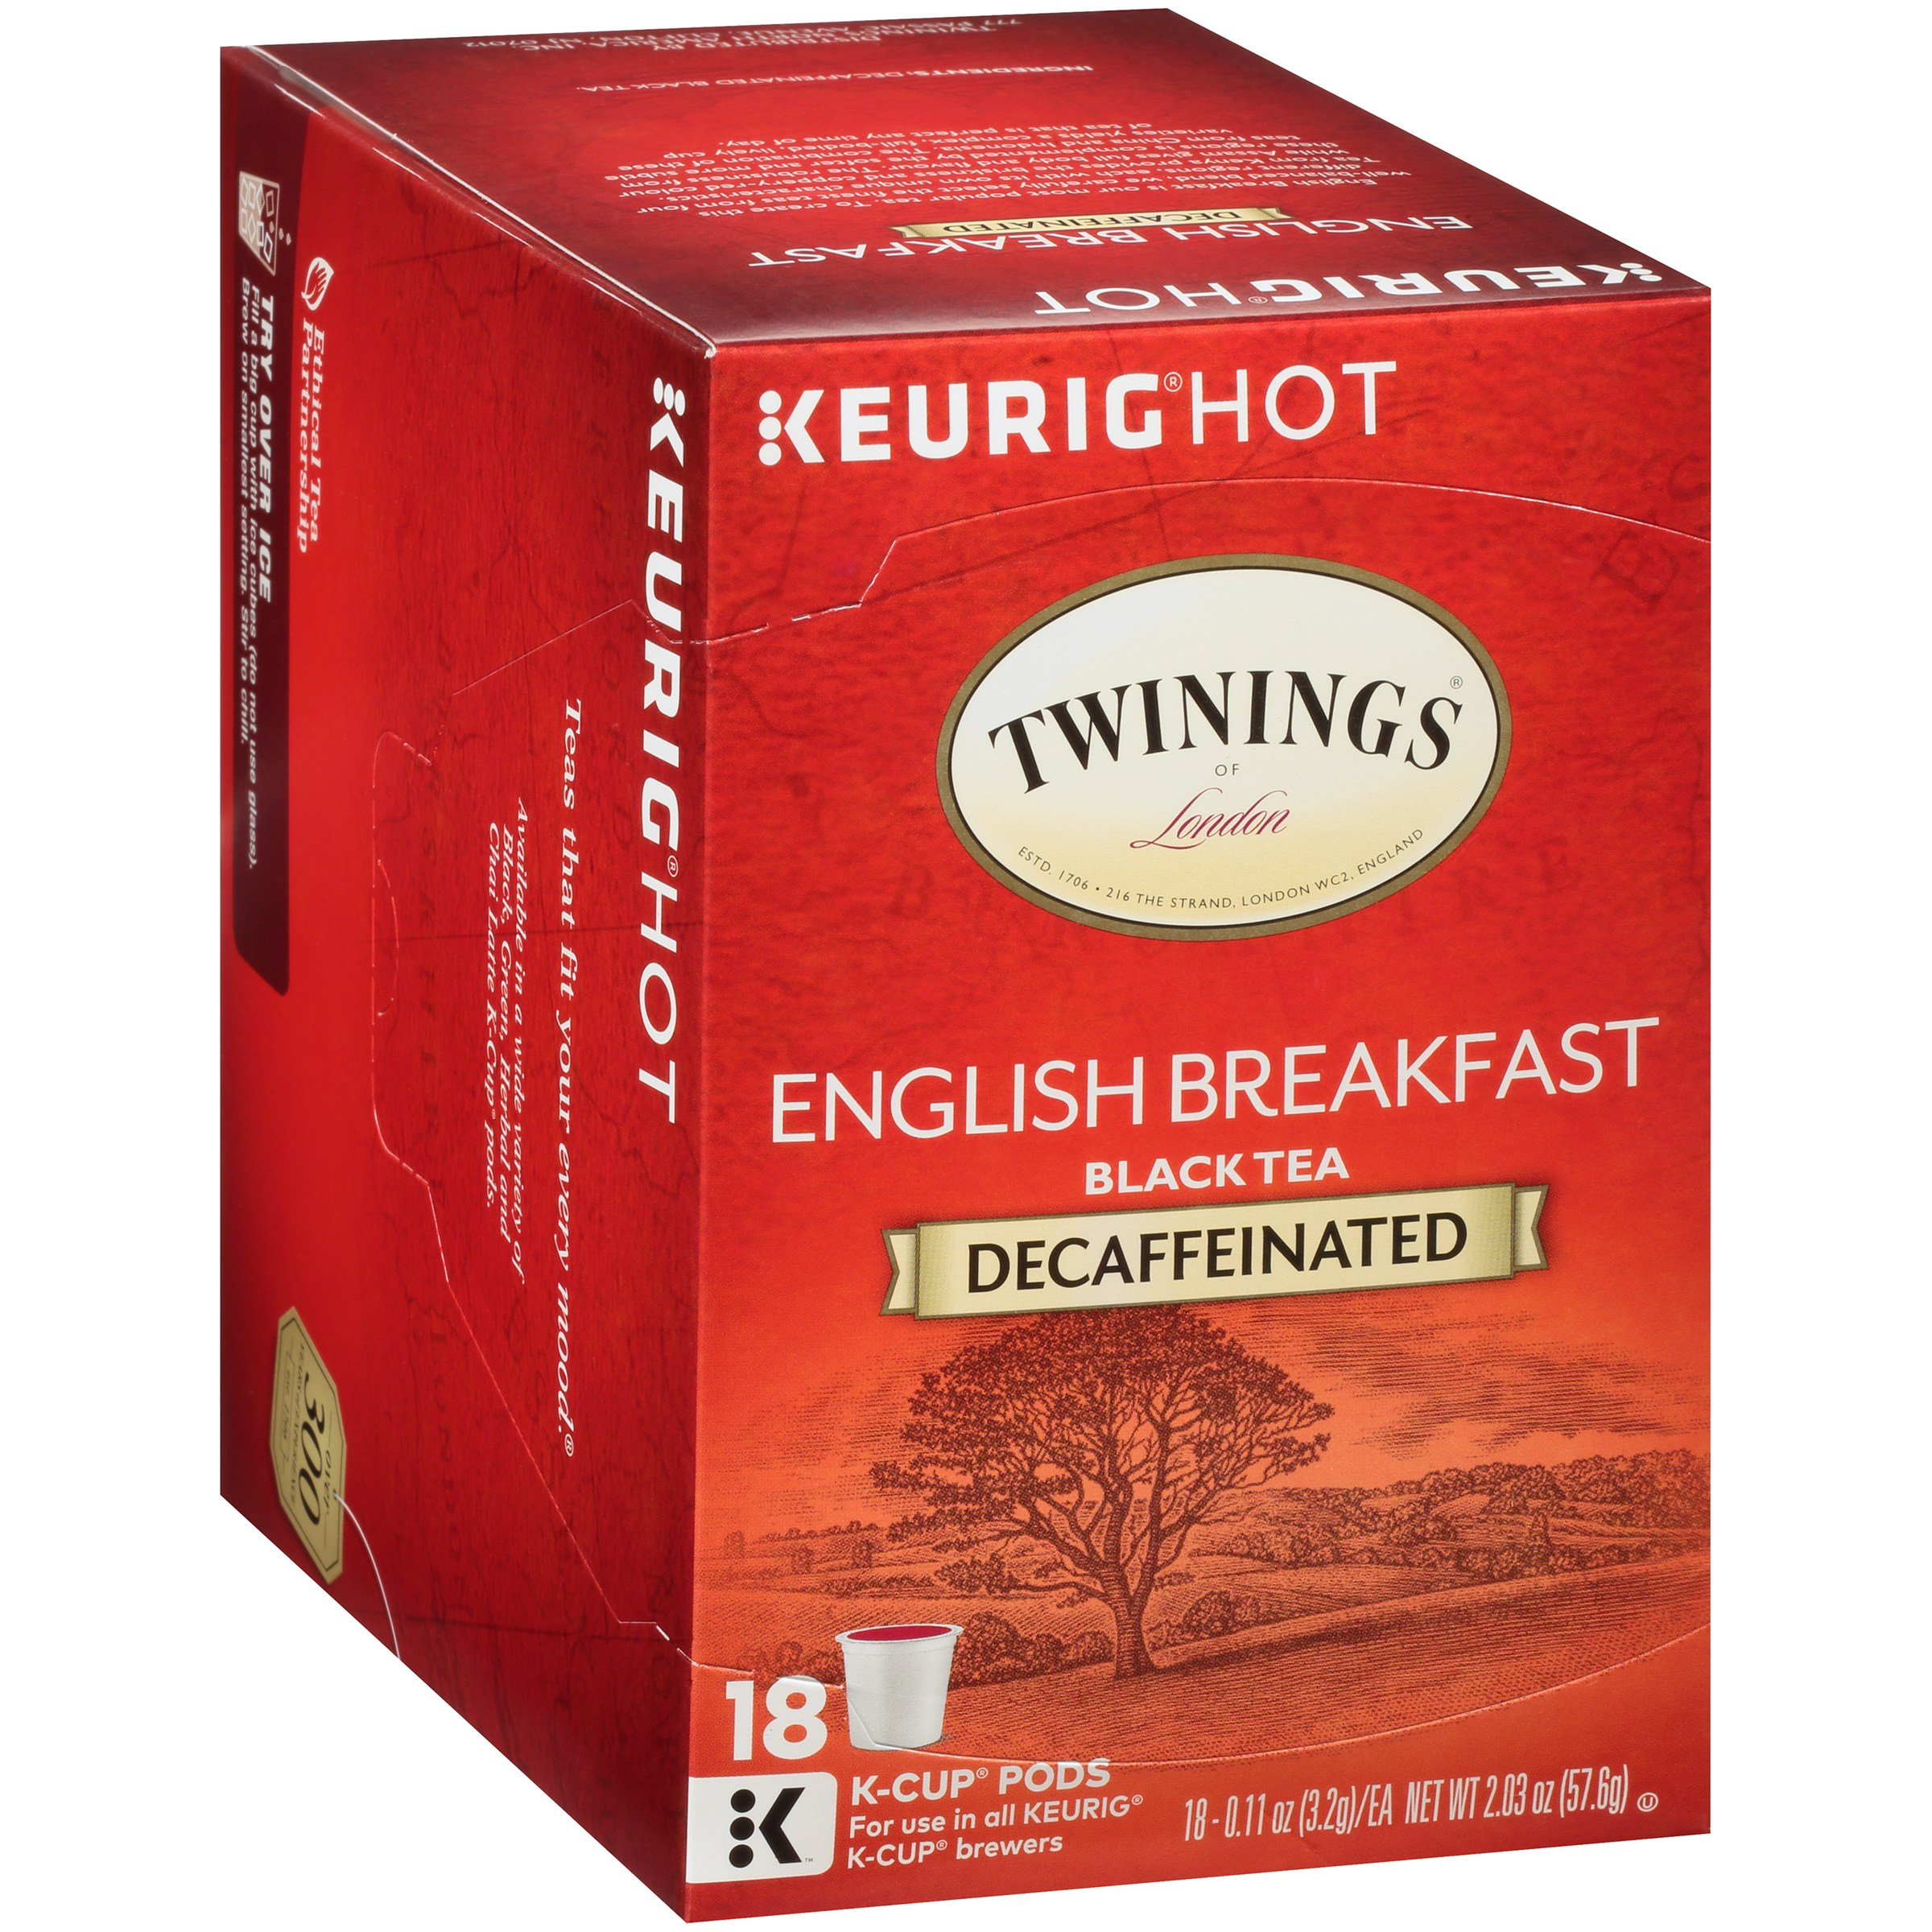 Twinings of London® Decaffeinated English Breakfast Tea 18 ct K-Cup® Pods 2.03 oz. Box